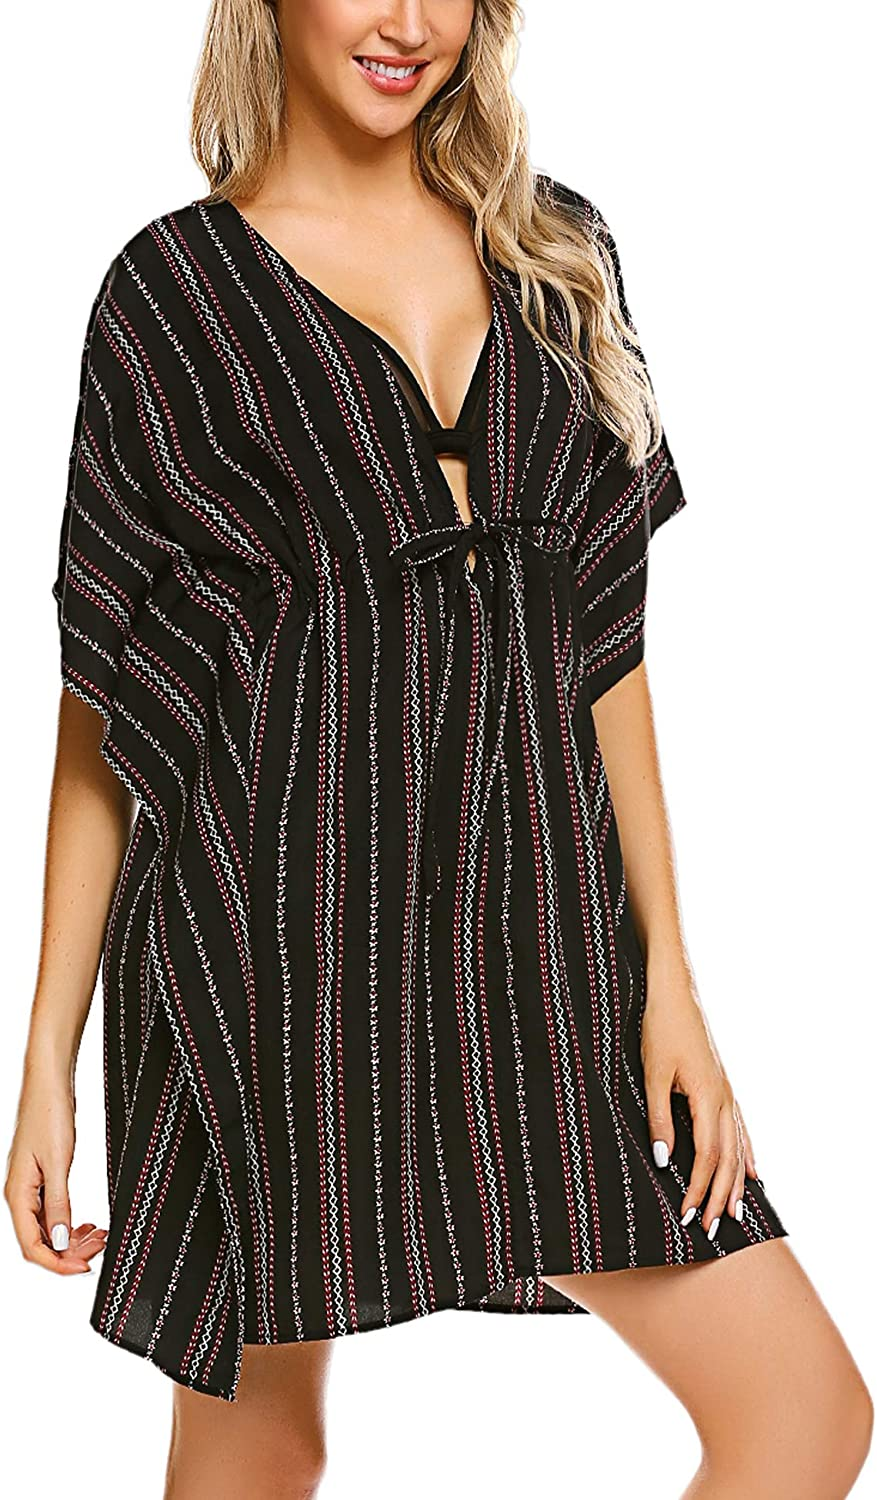 Adome Cover Ups For Swimwear Women Swim Coverup Oversized Striped Beachwear At Amazon Women S Clothing Store